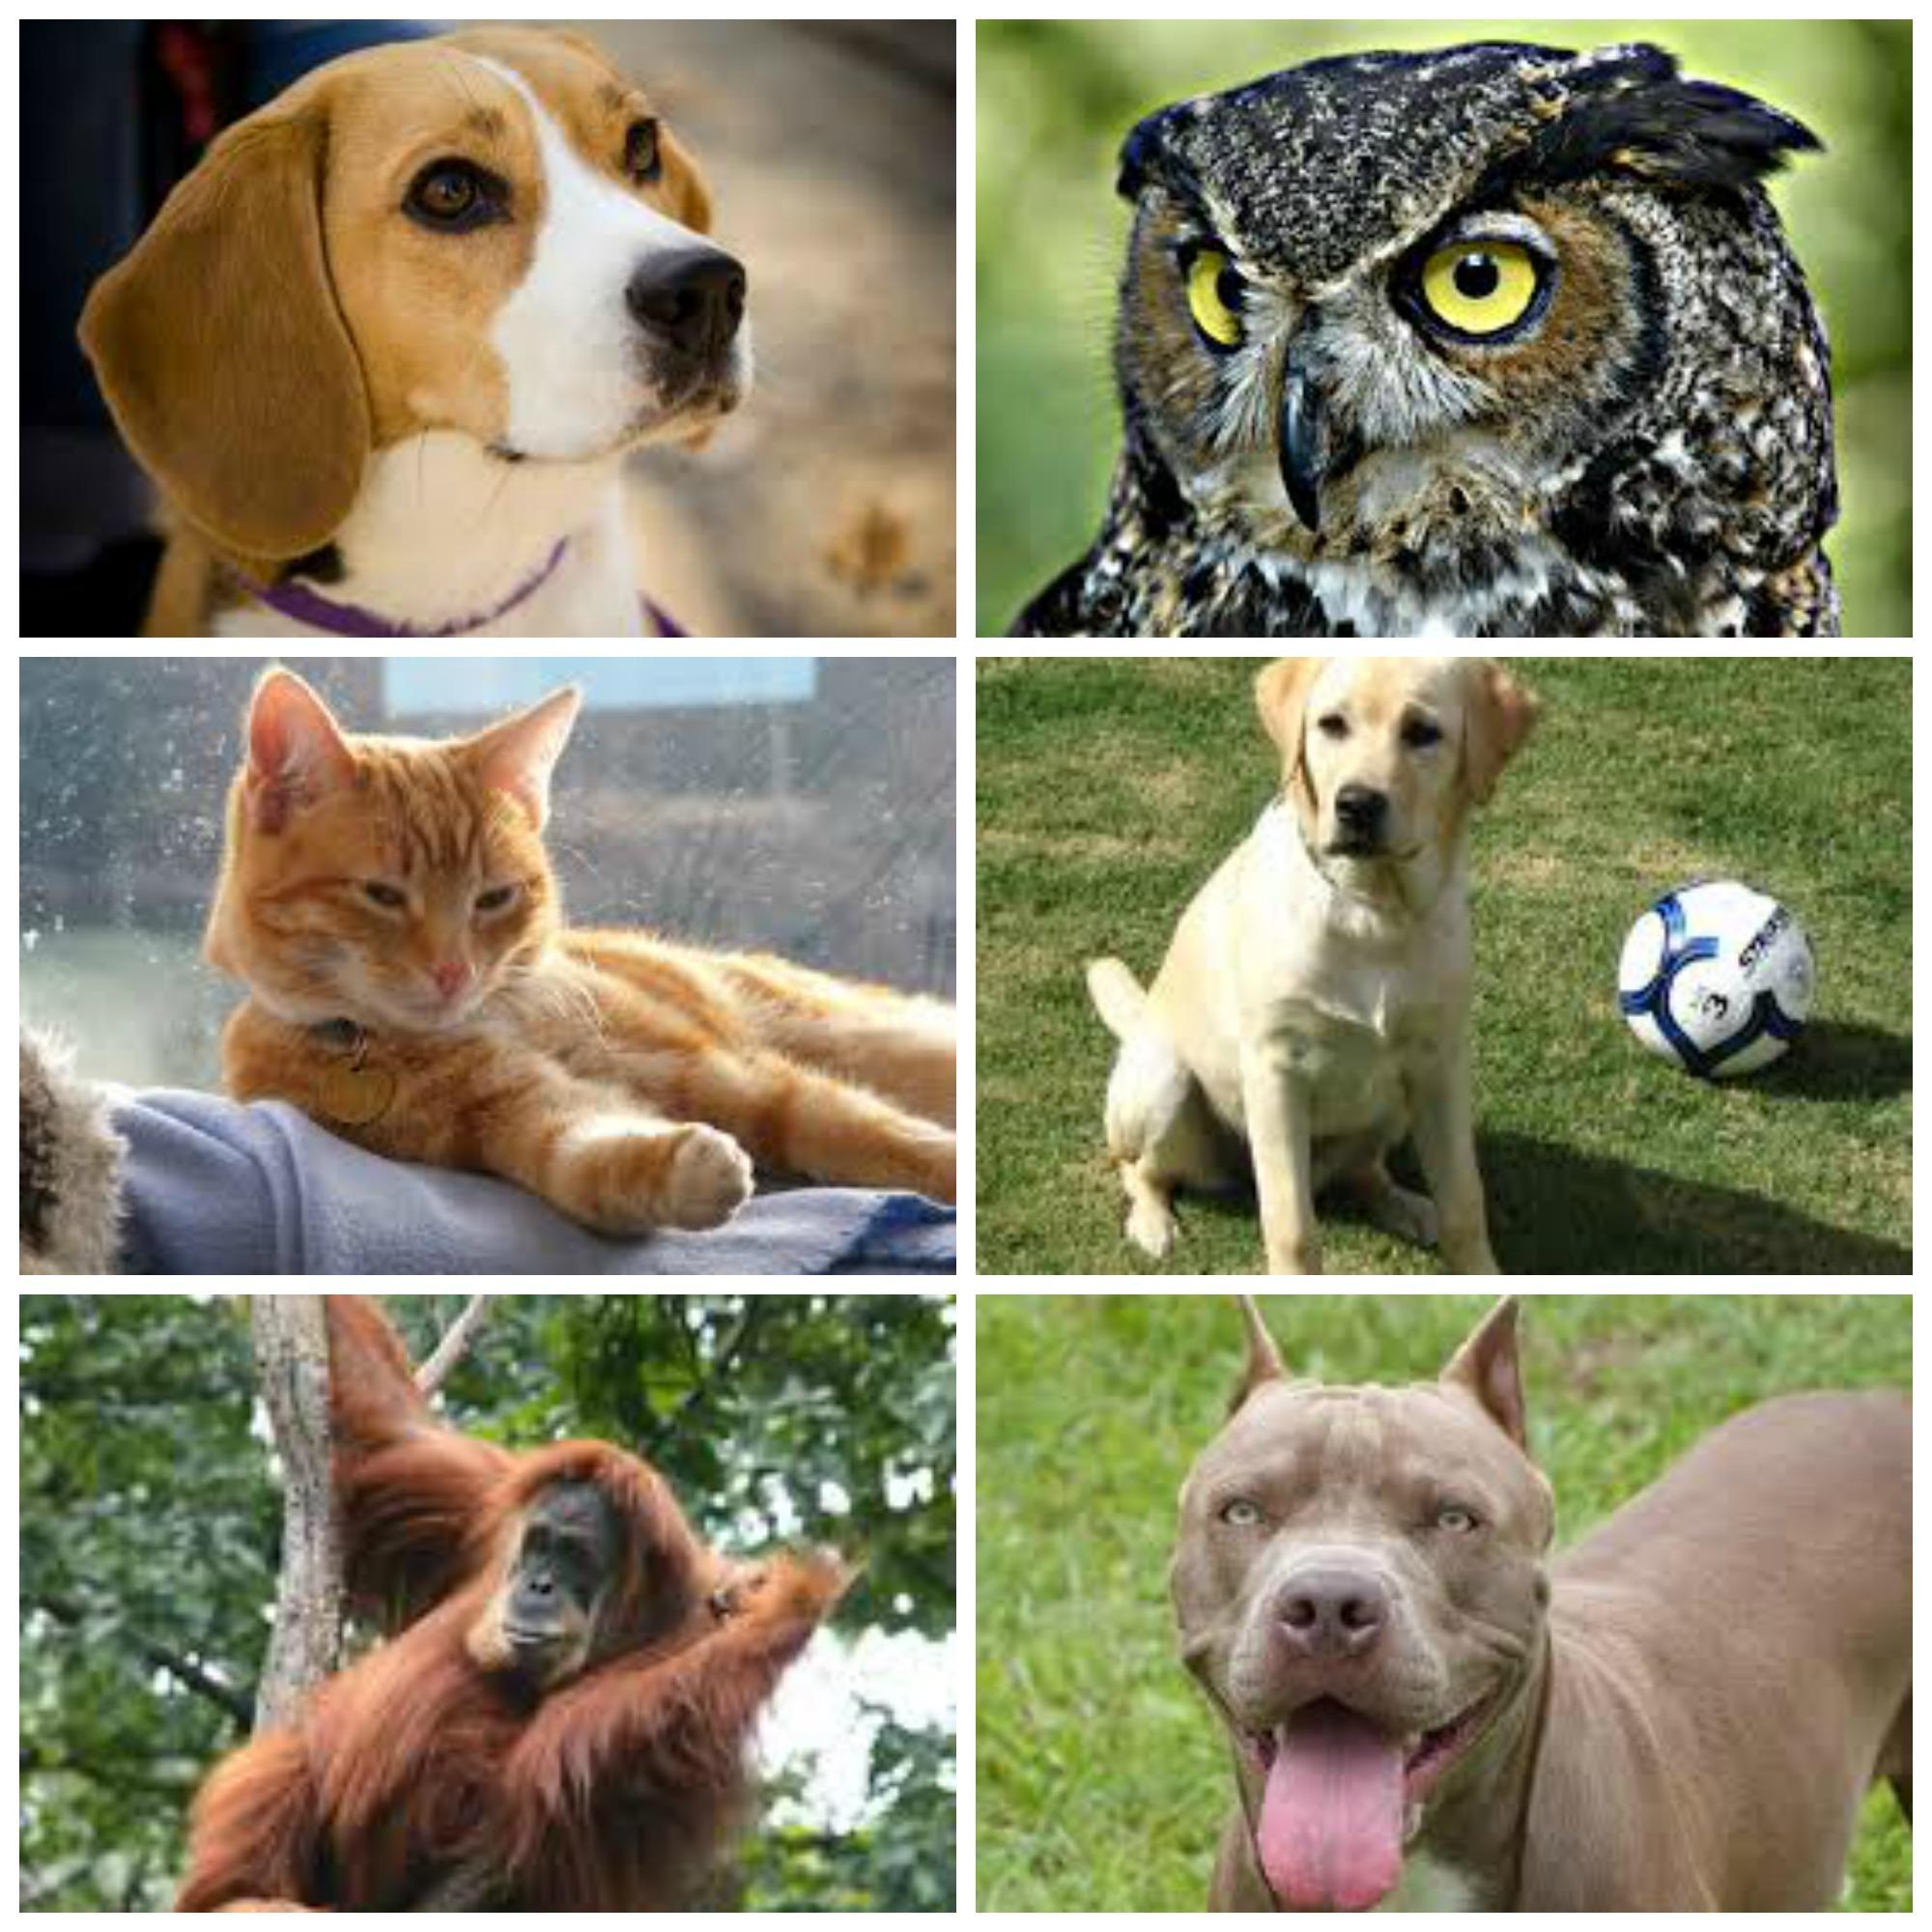 If you were an animal, which of these would you be?